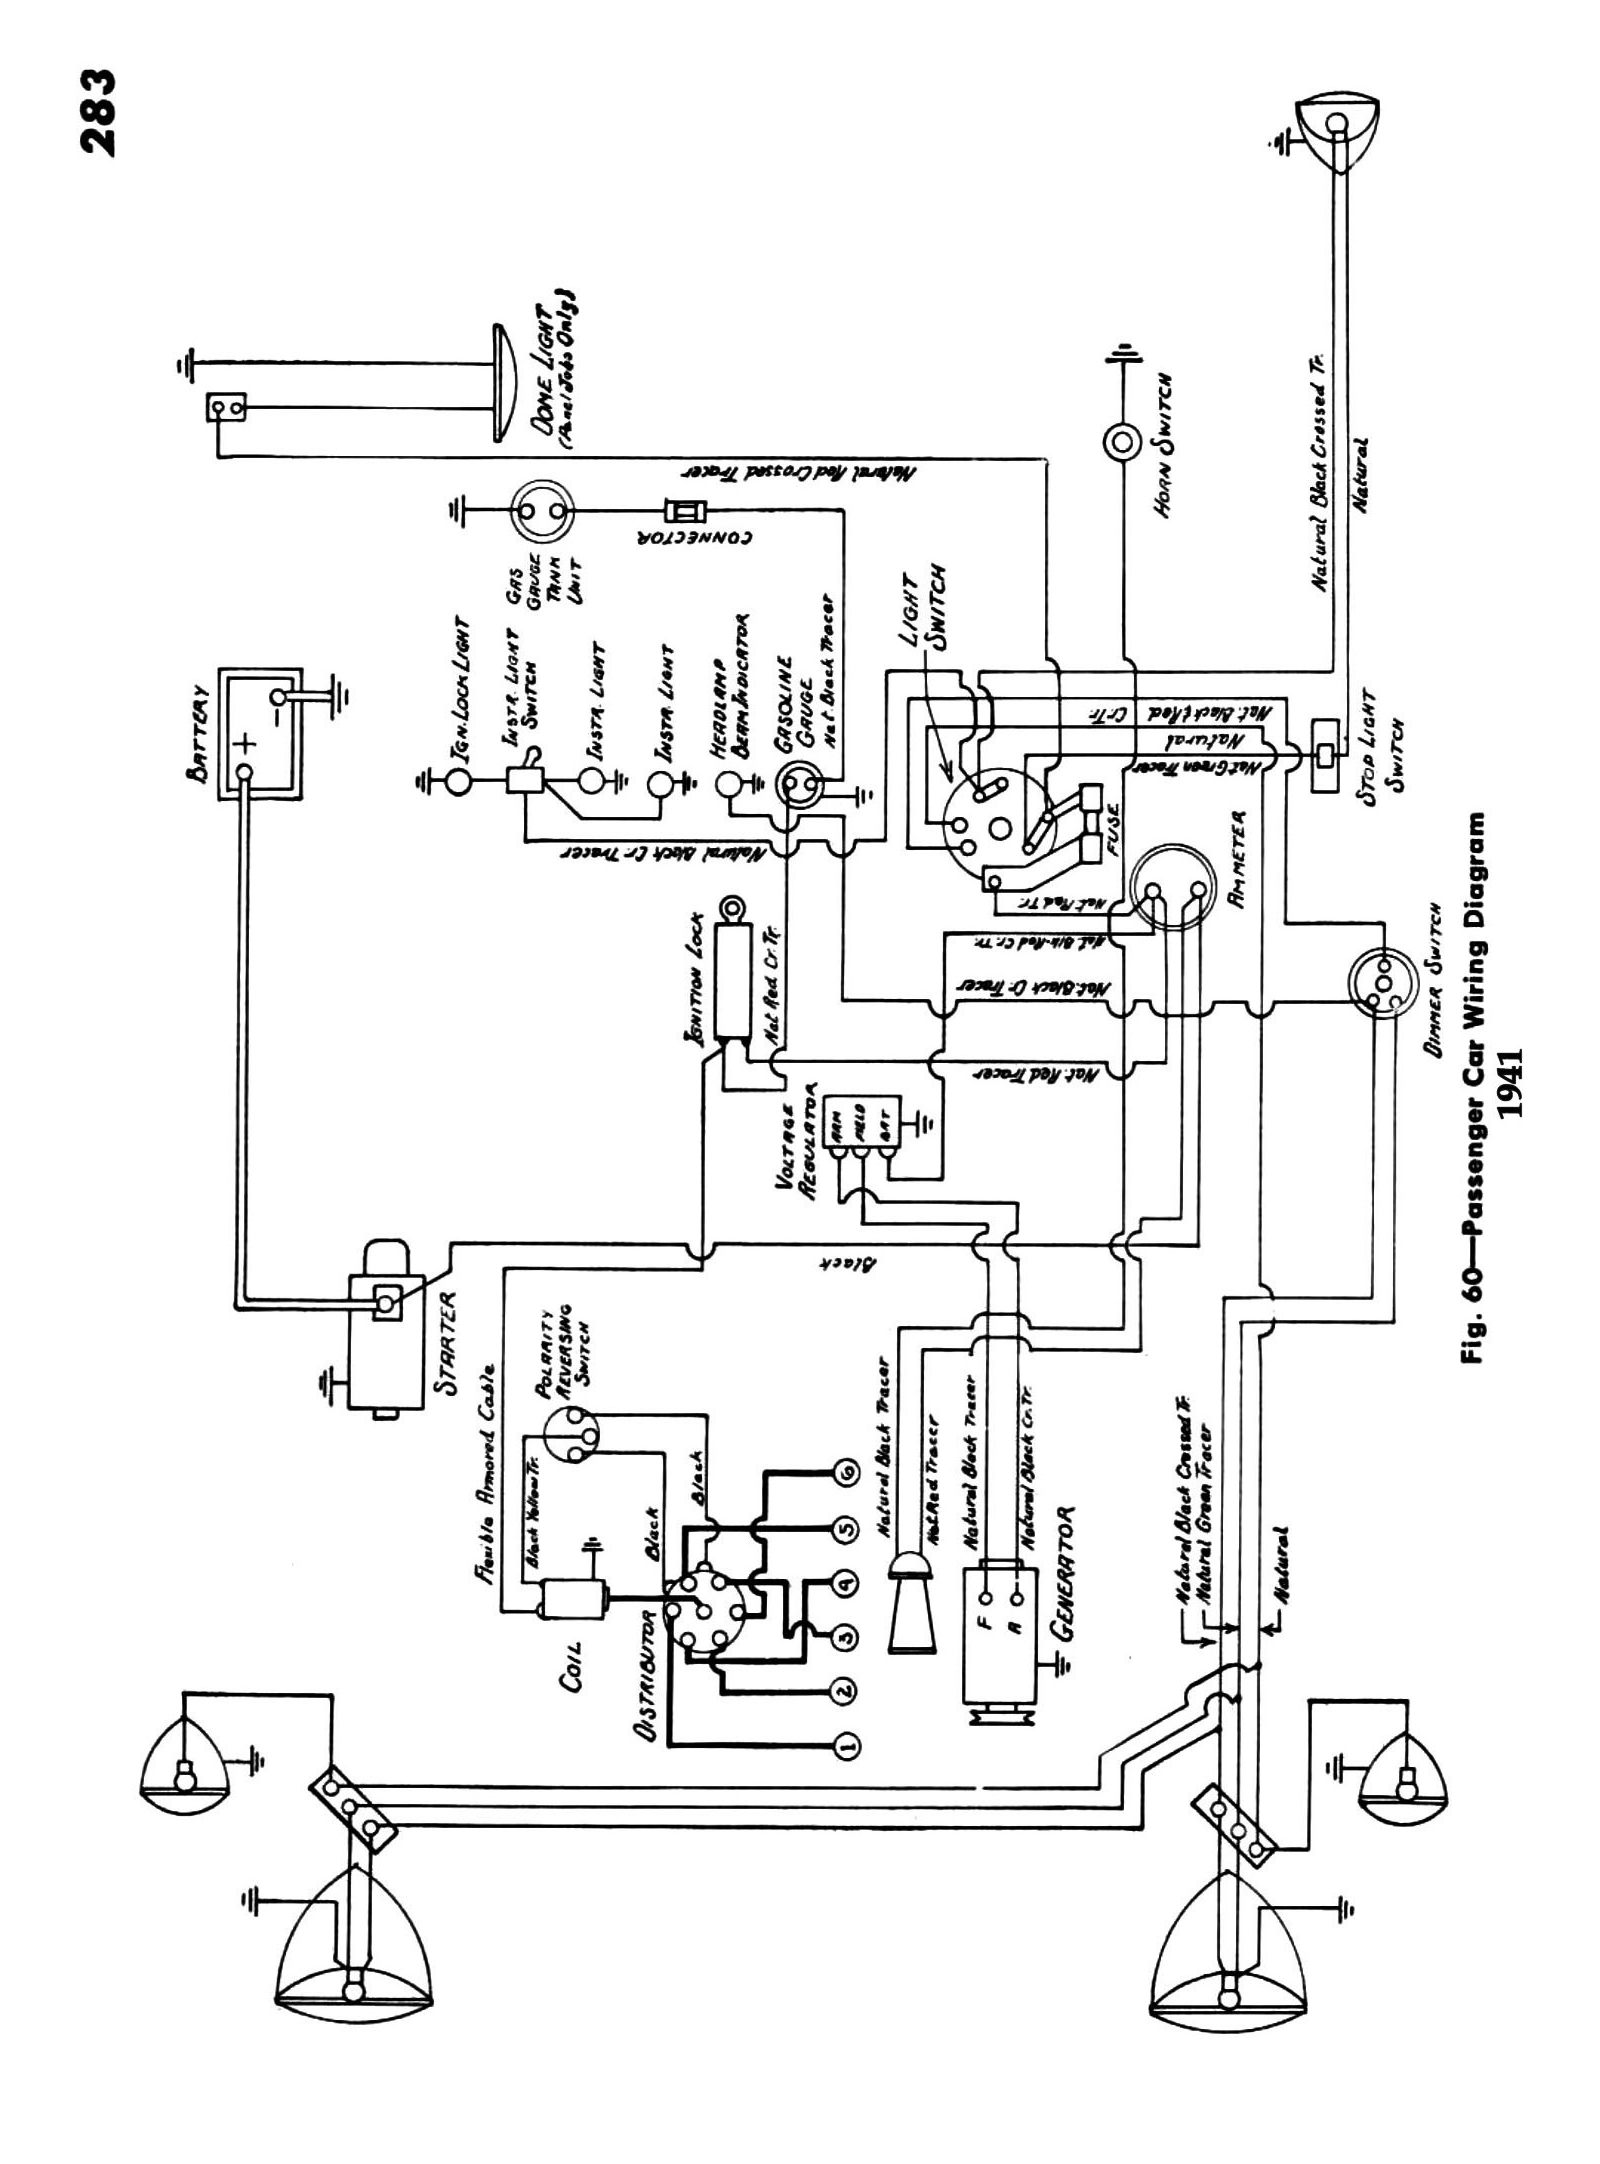 Wiring on 1997 buick riviera wiring diagram